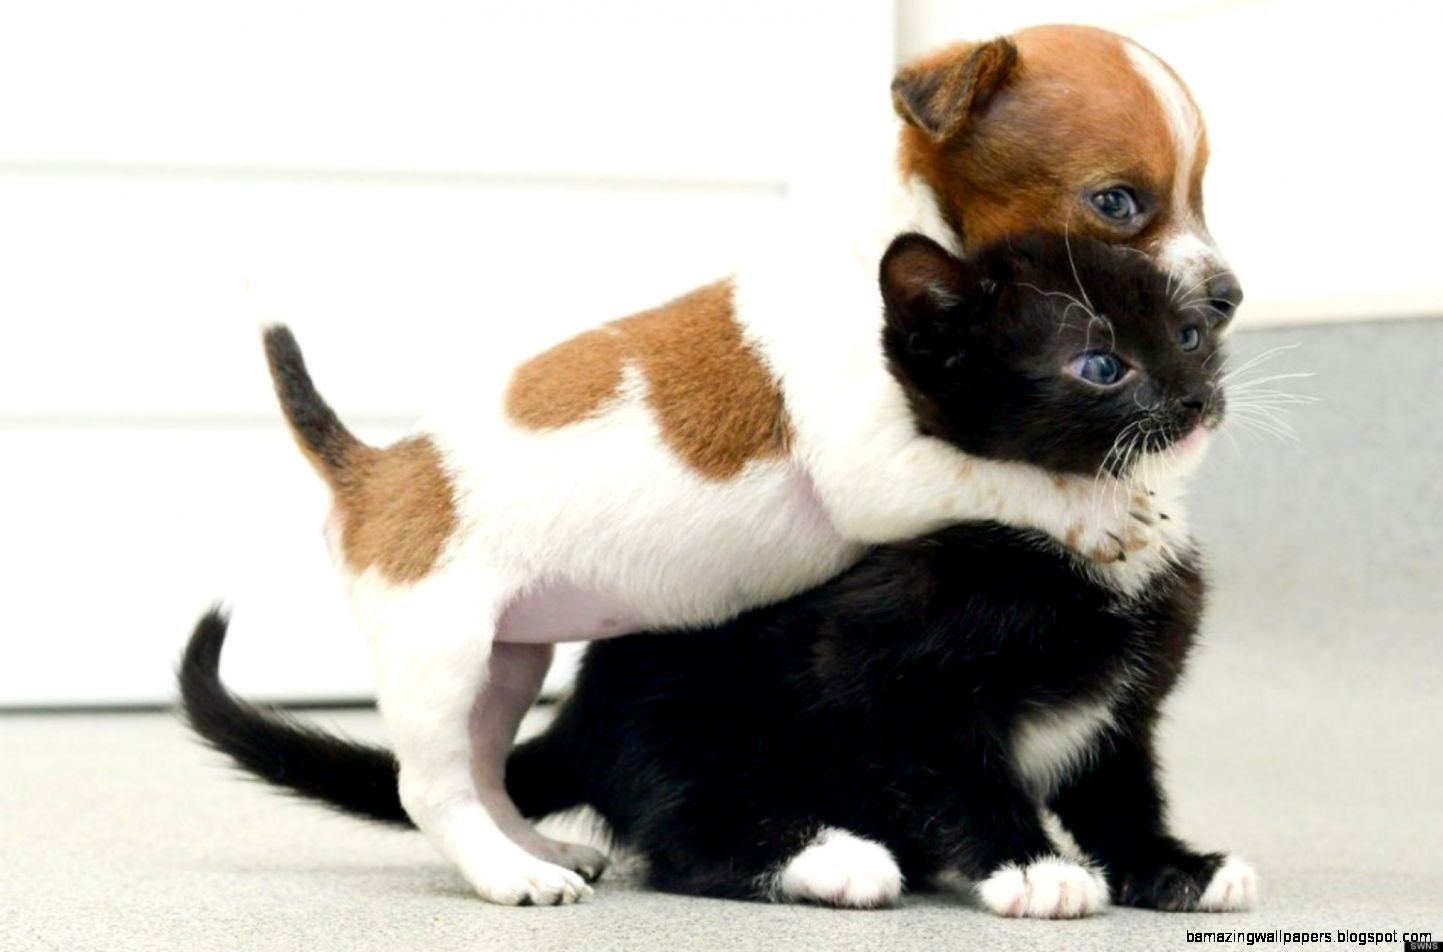 Cute Puppy And Kitten Gif Amazing Wallpapers